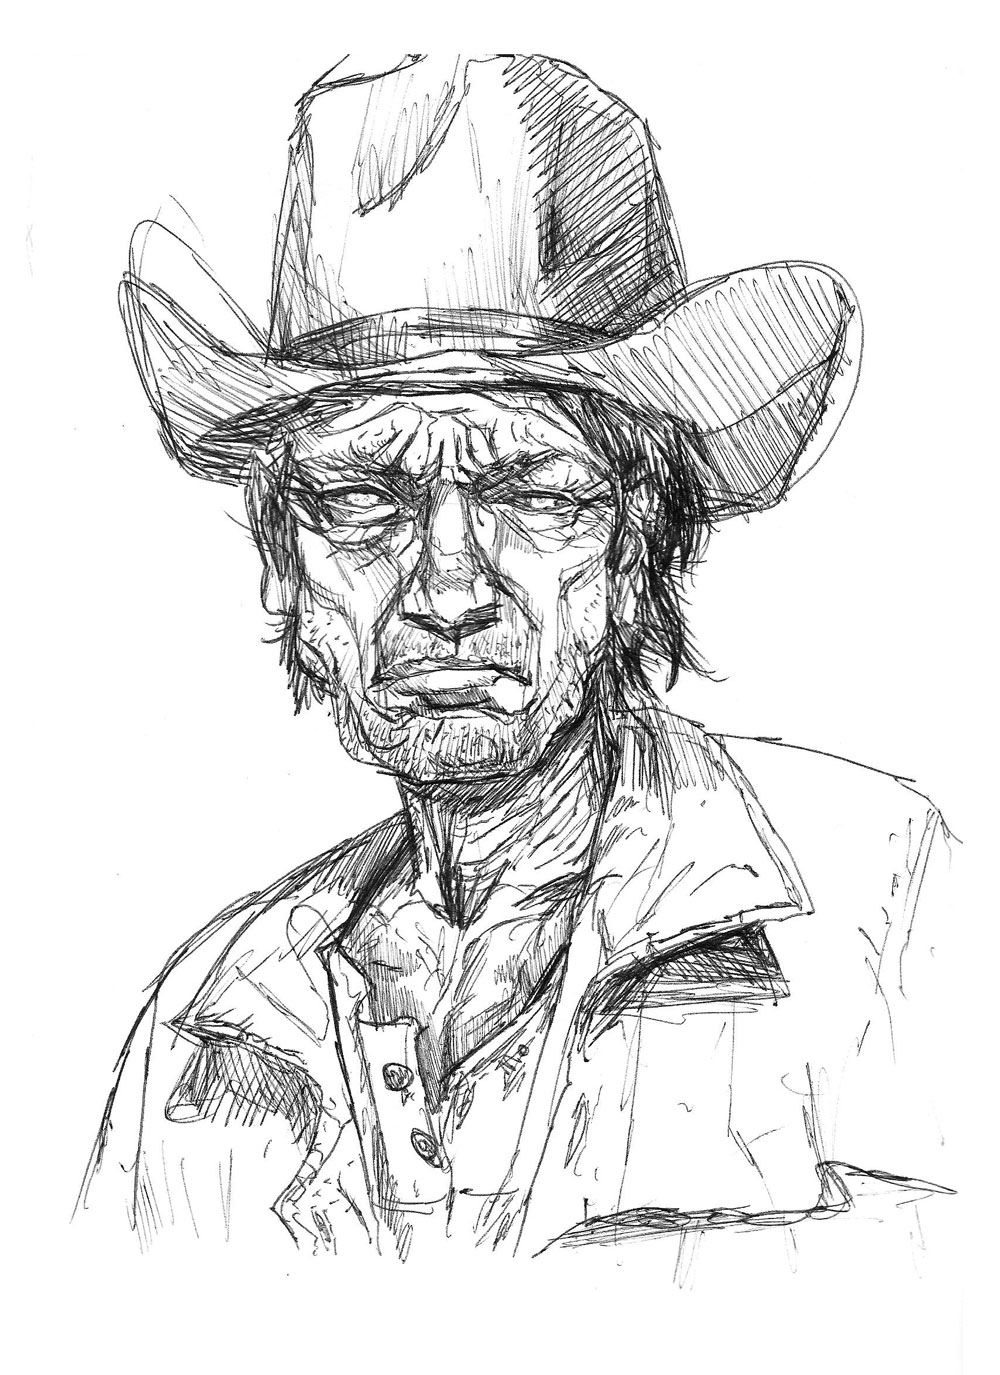 Cowboy sketch drawings - photo#15